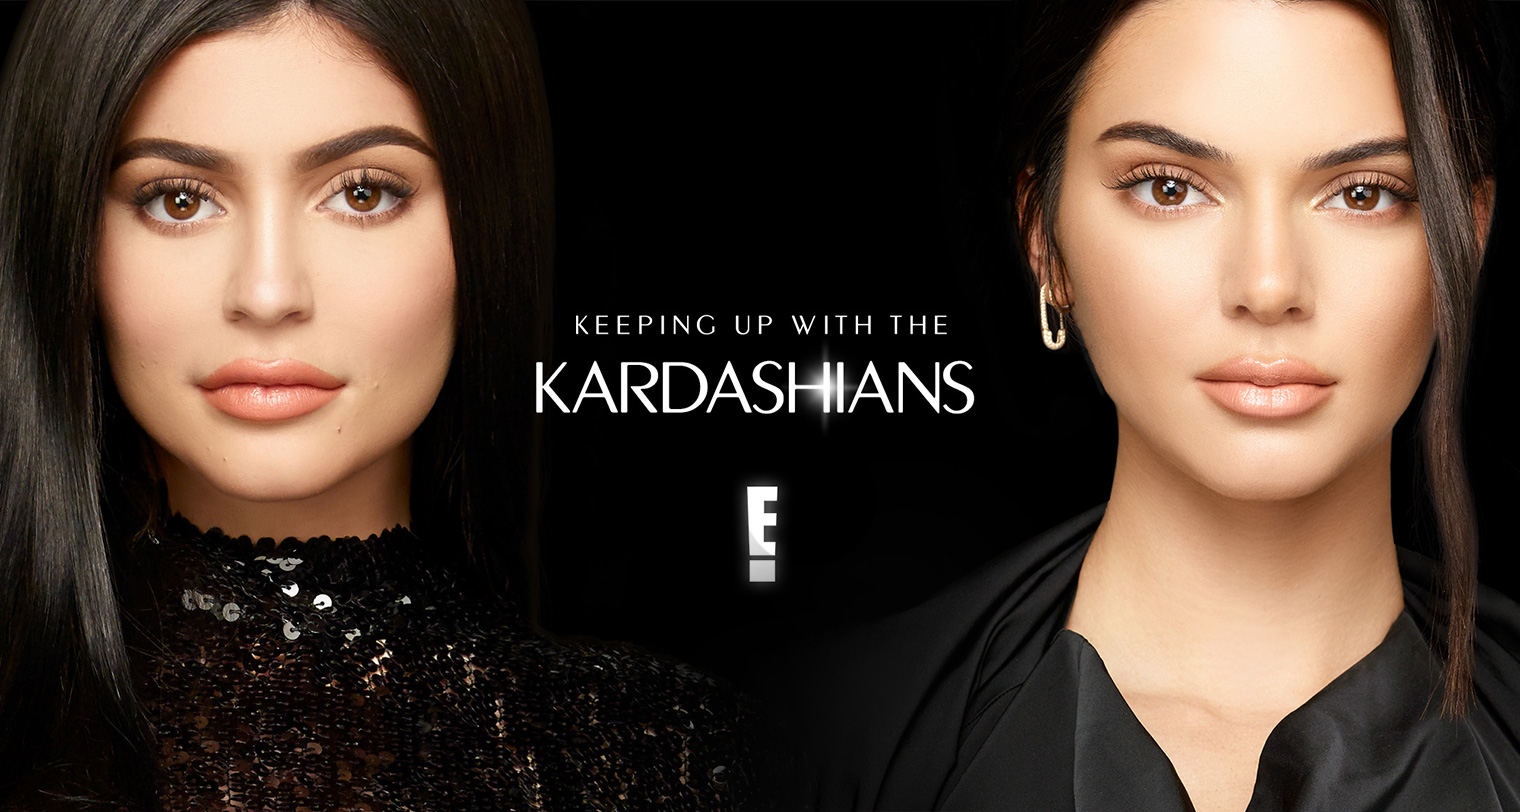 The official blog and portfolio of photographer nick for 1st season of keeping up with the kardashians